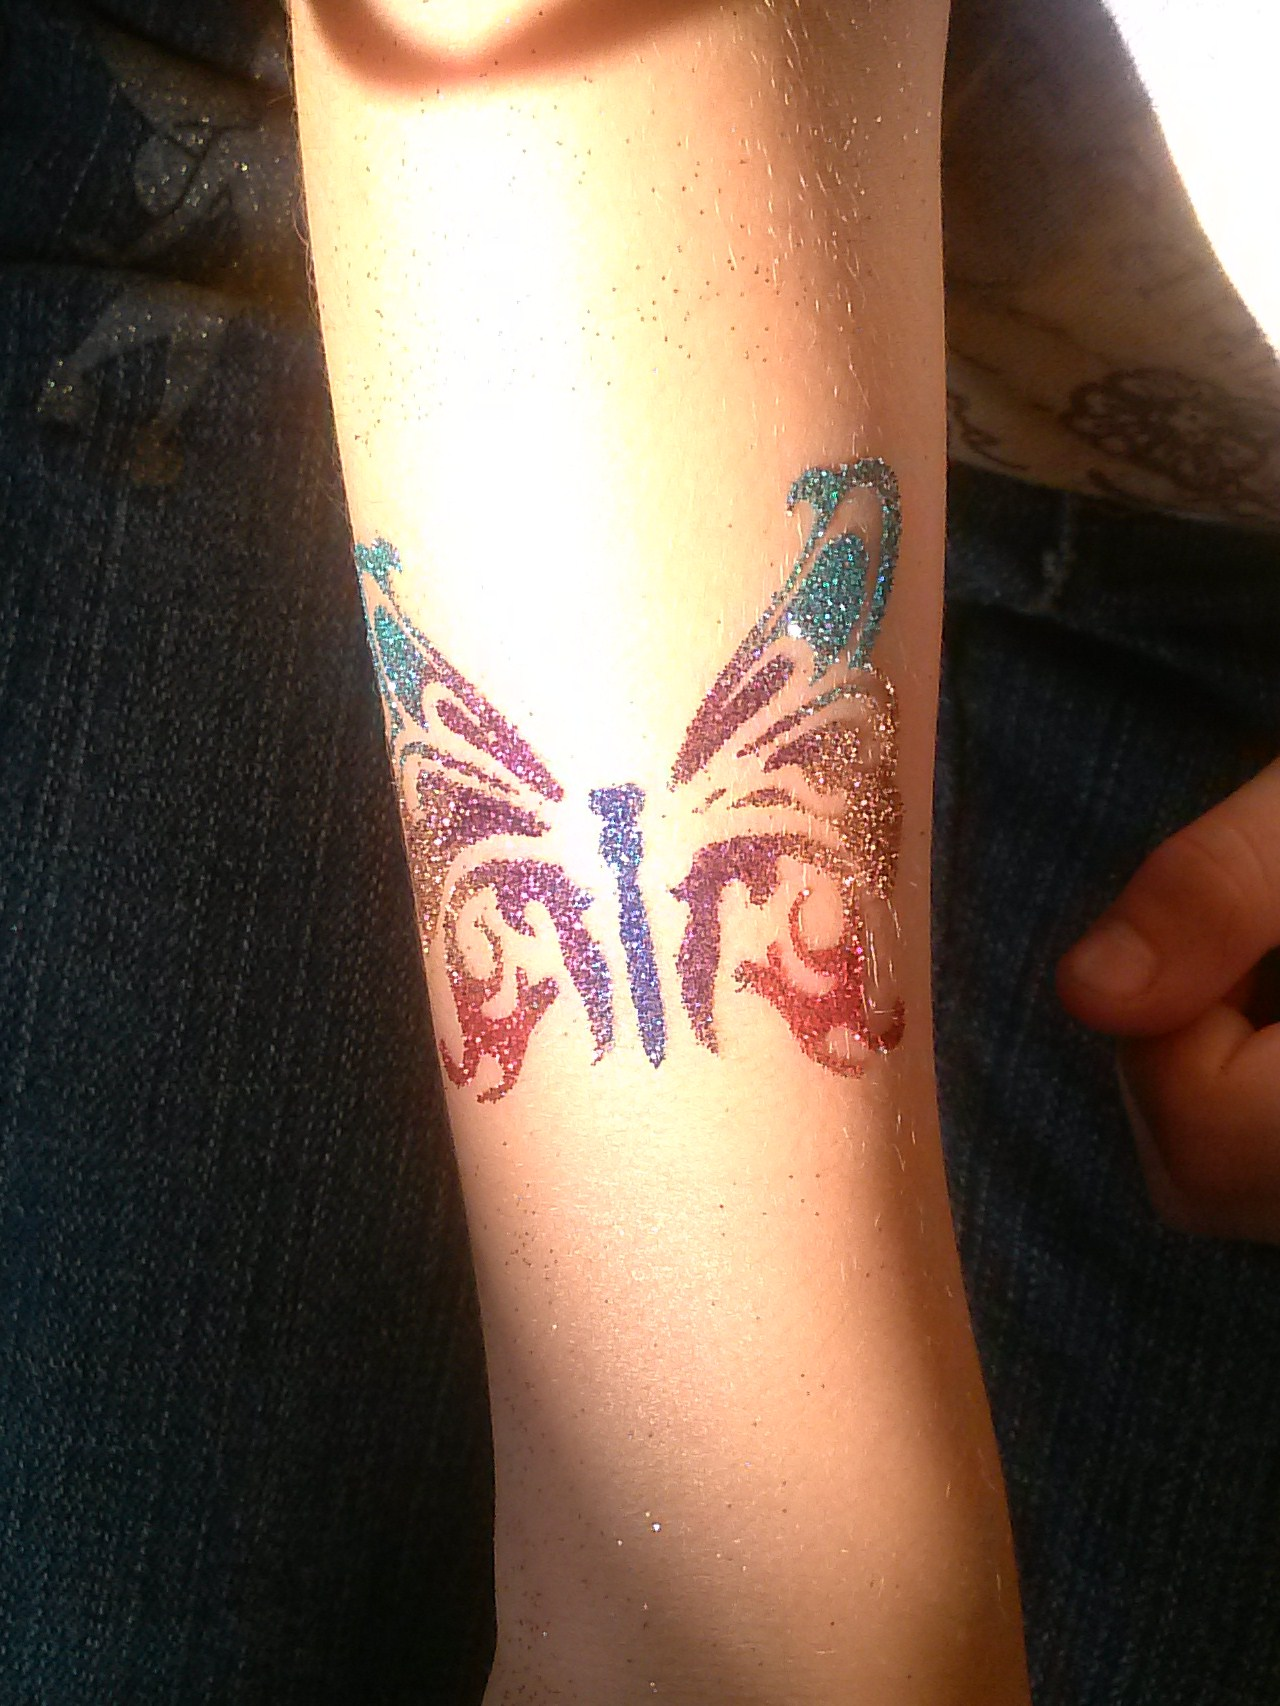 Glitter tattoos at rivercity chick fil a for Where to get glitter tattoos